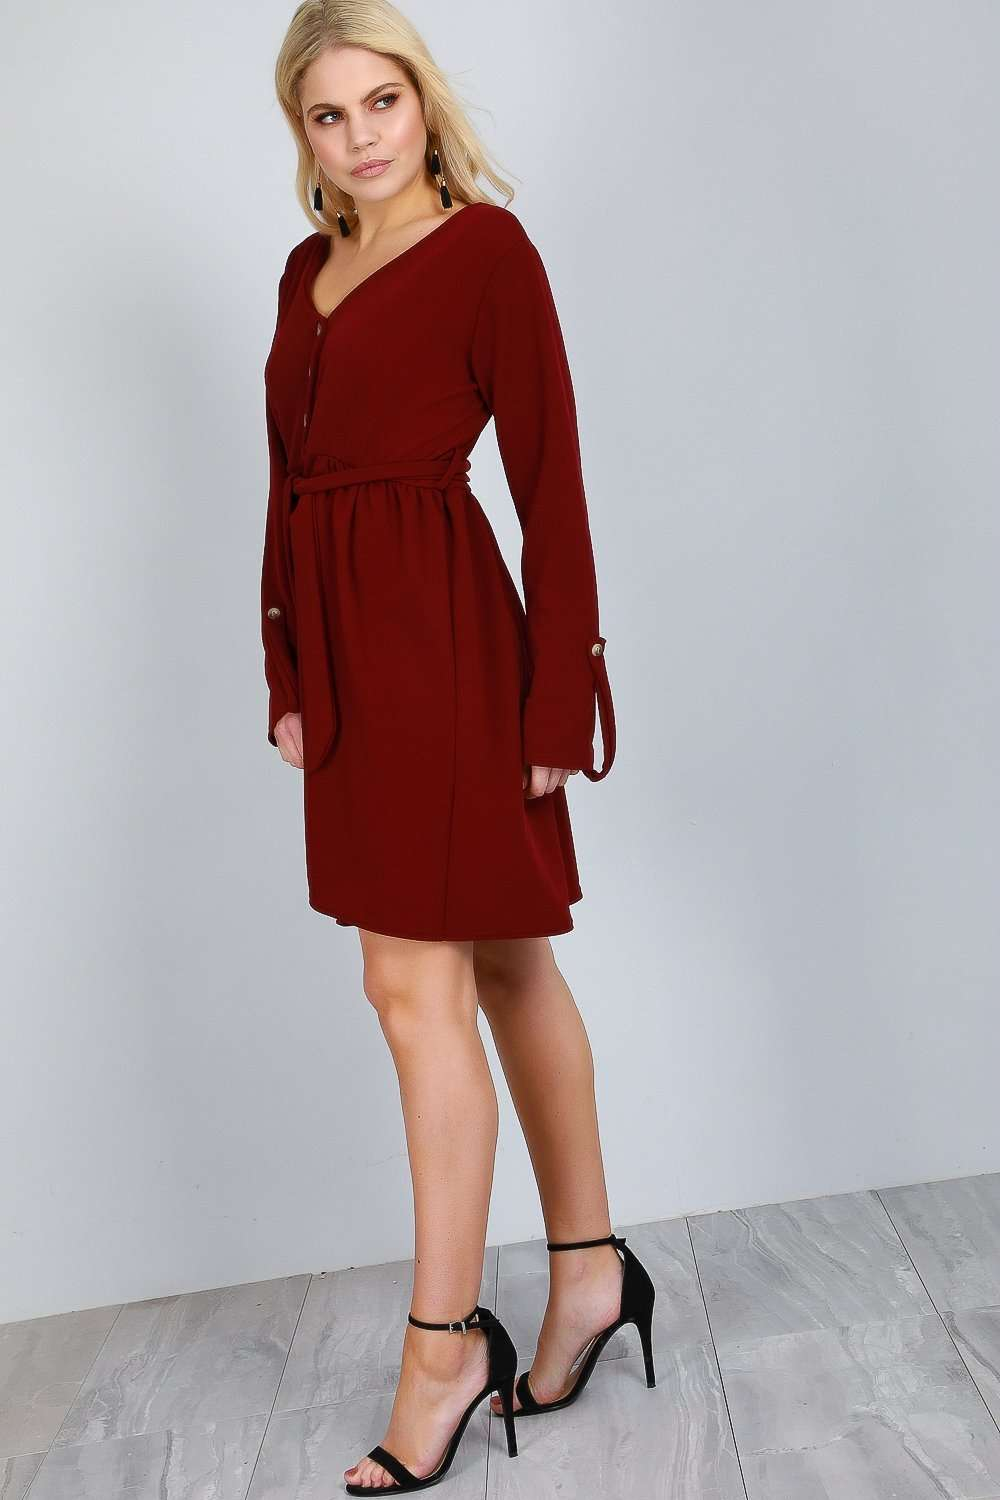 Jess Long Sleeve Button Through Midi Dress - bejealous-com